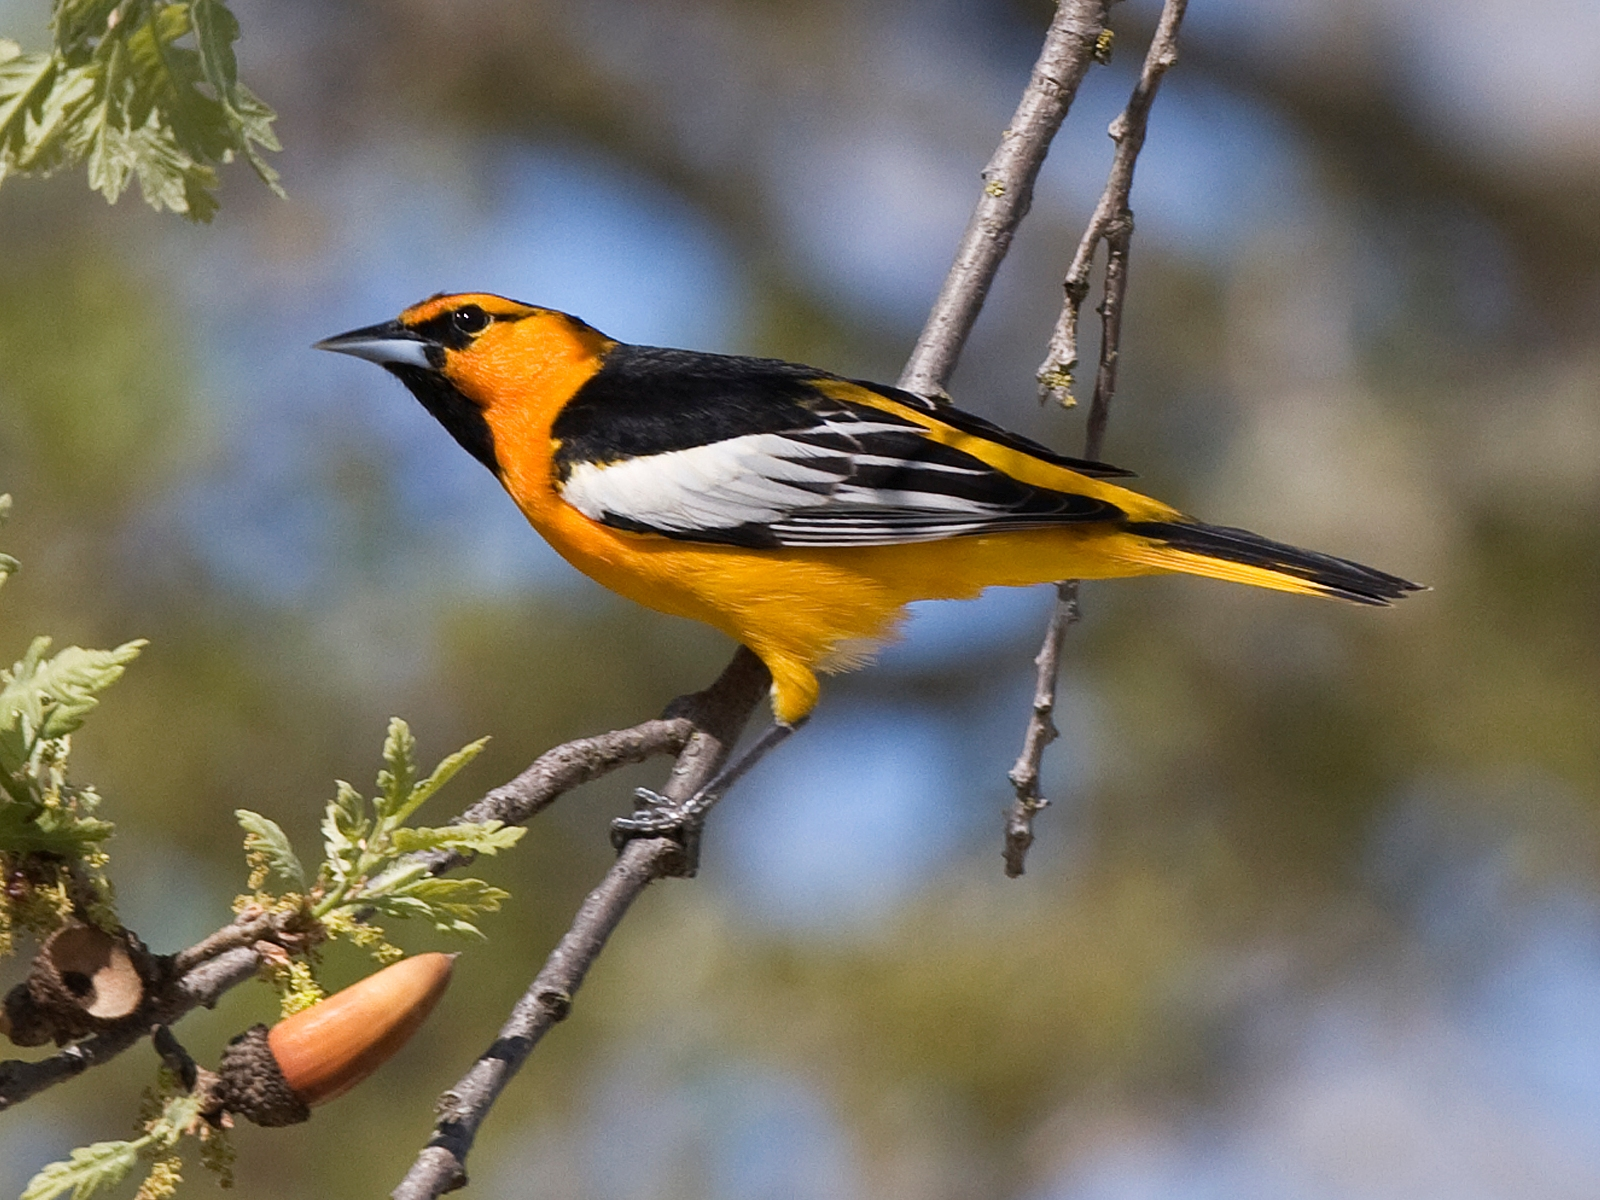 Male Bullock's Oriole at Atascadero Lake